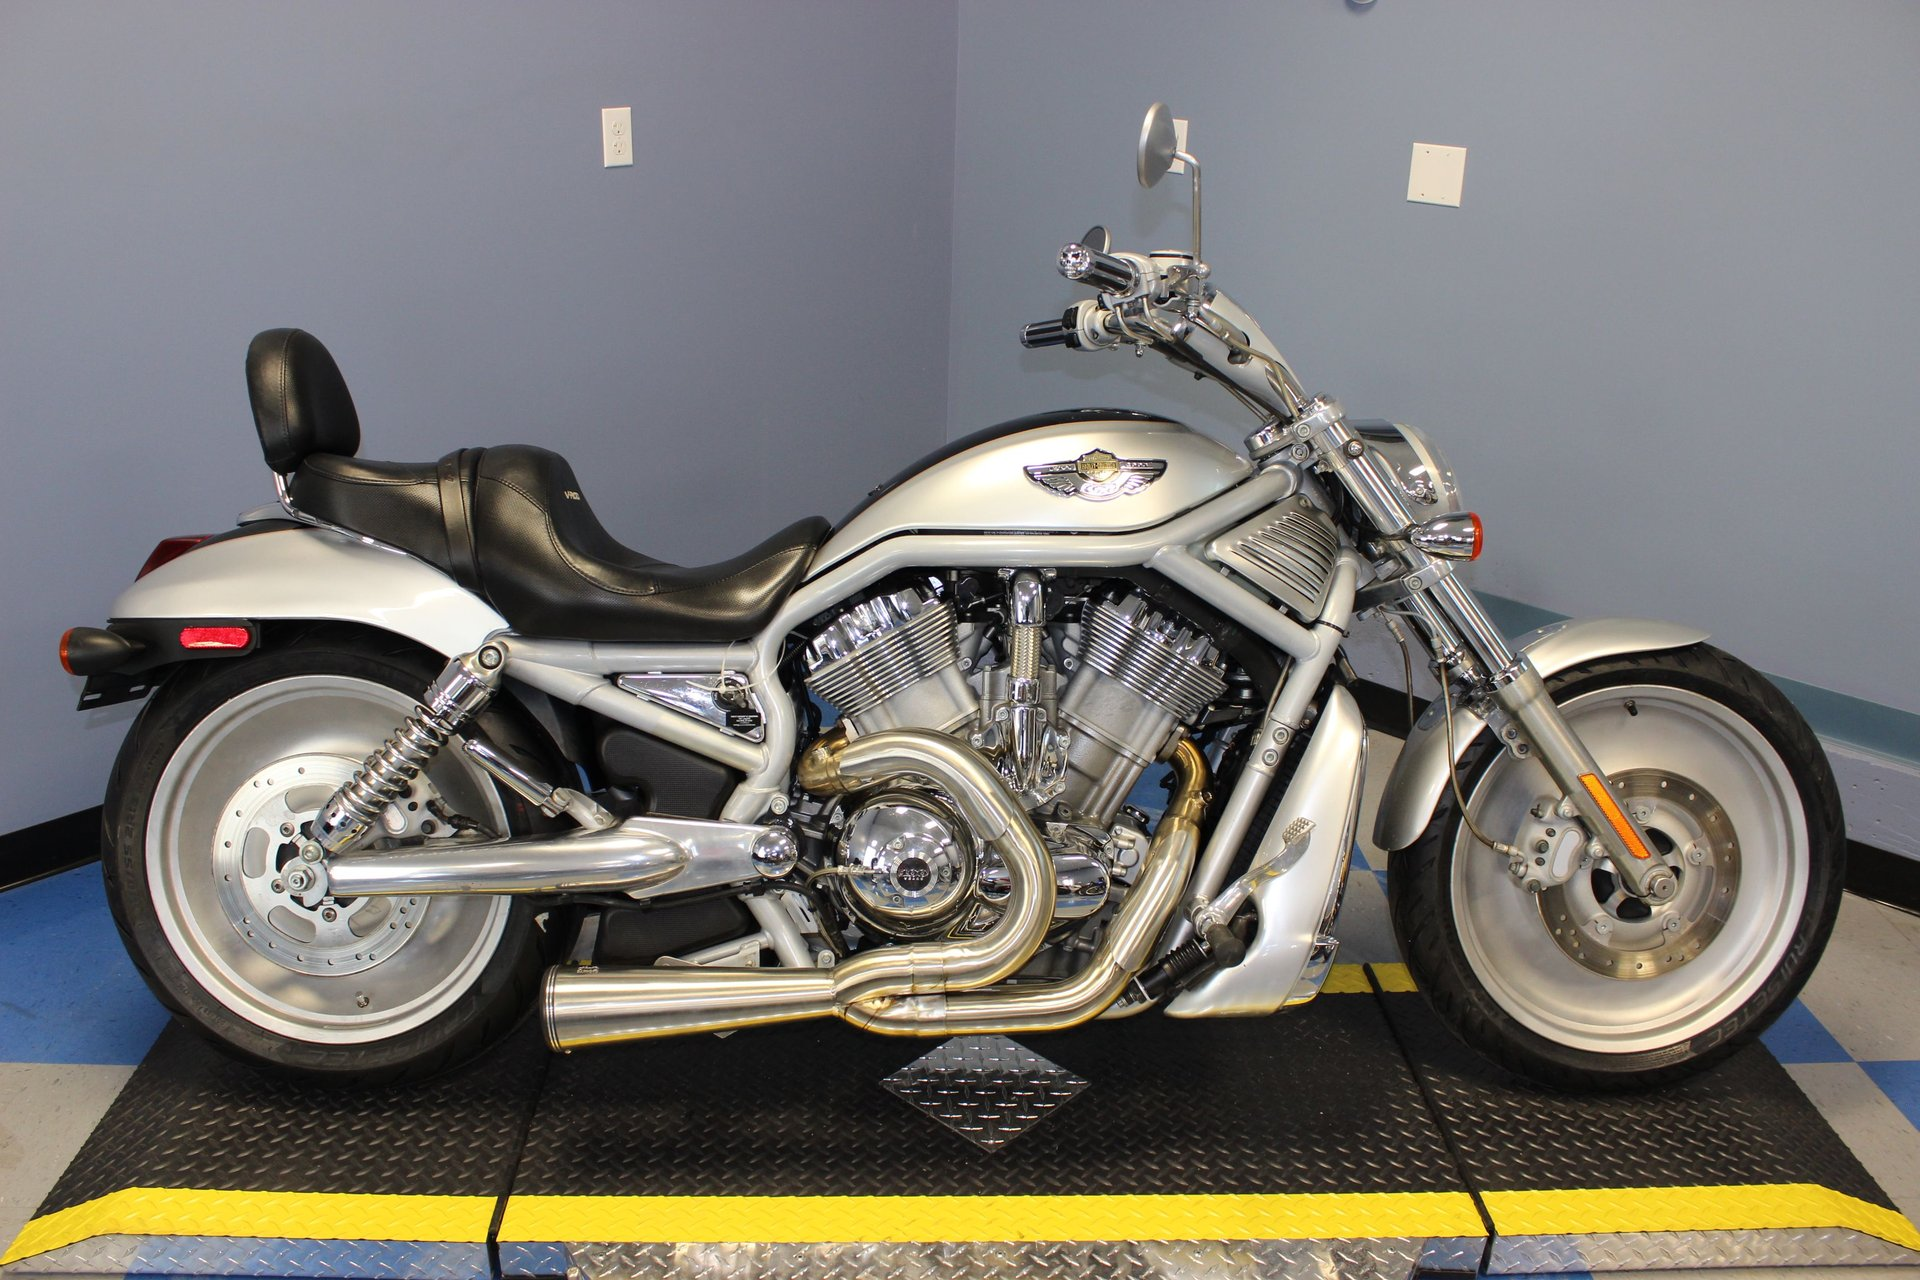 For Sale 2003 Harley Davidson V-Rod